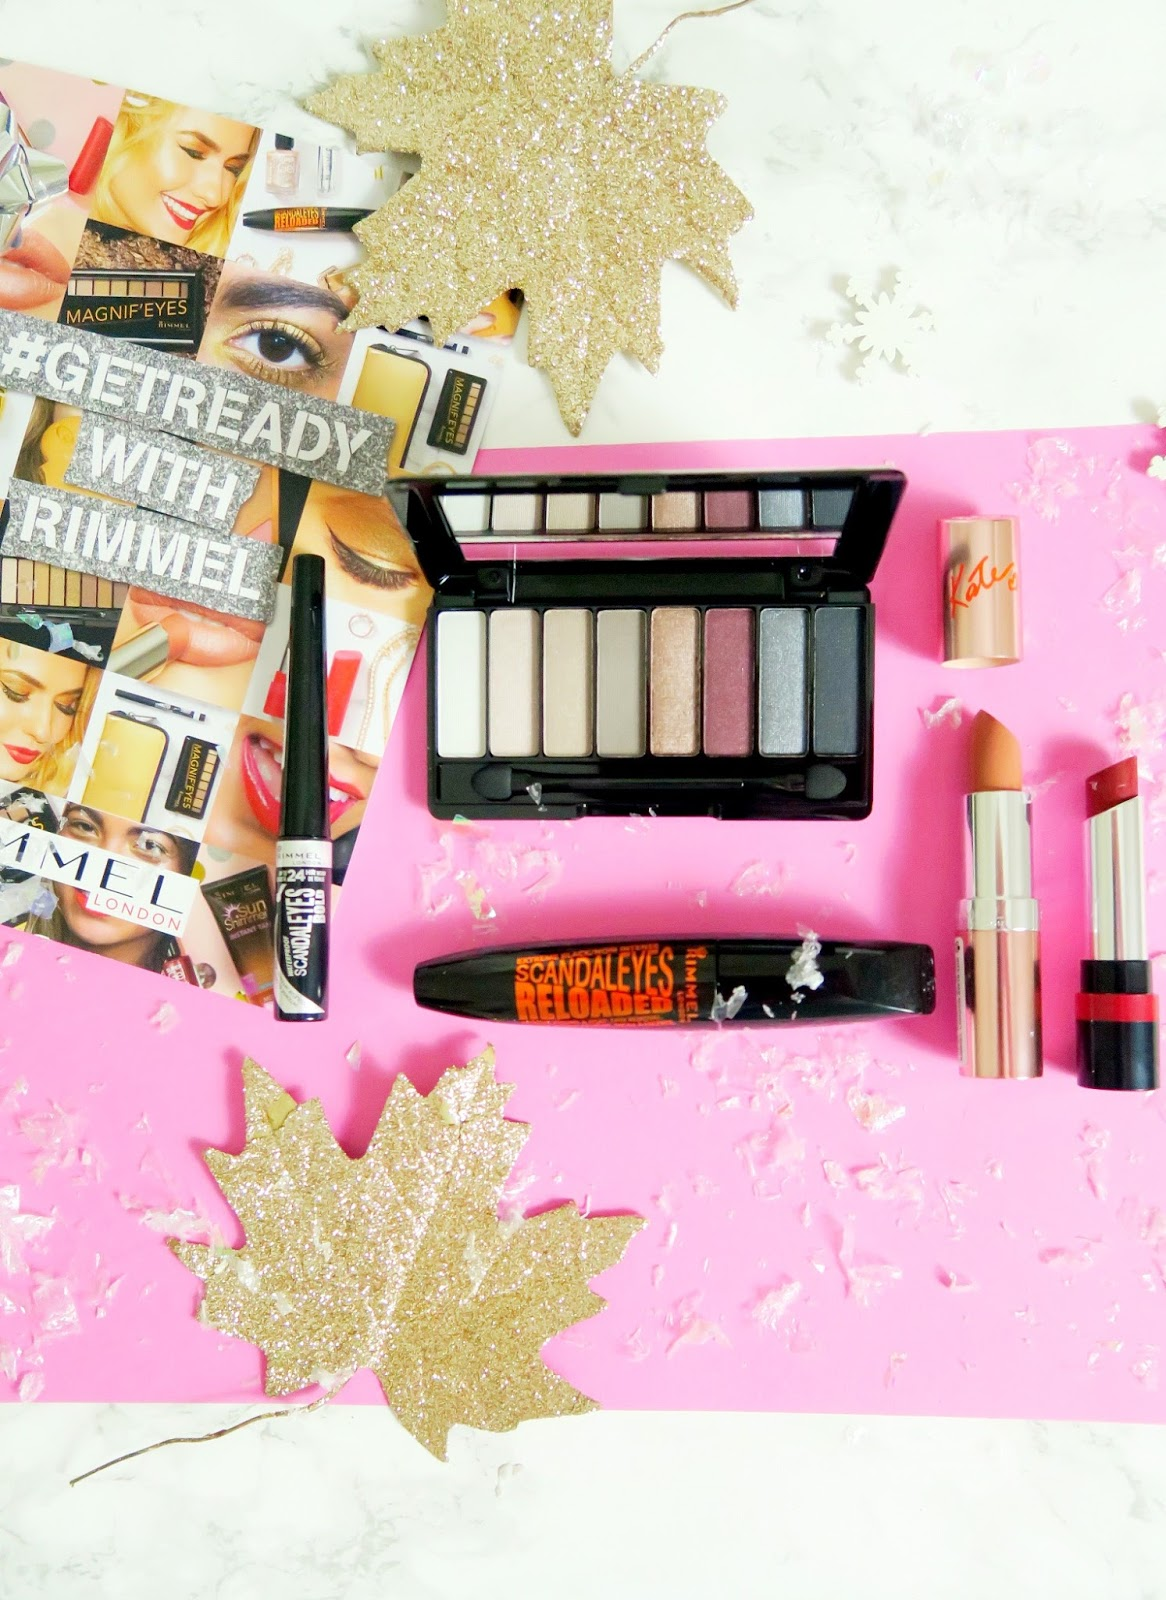 an image of #GetReadyWithRimmel products for NYE